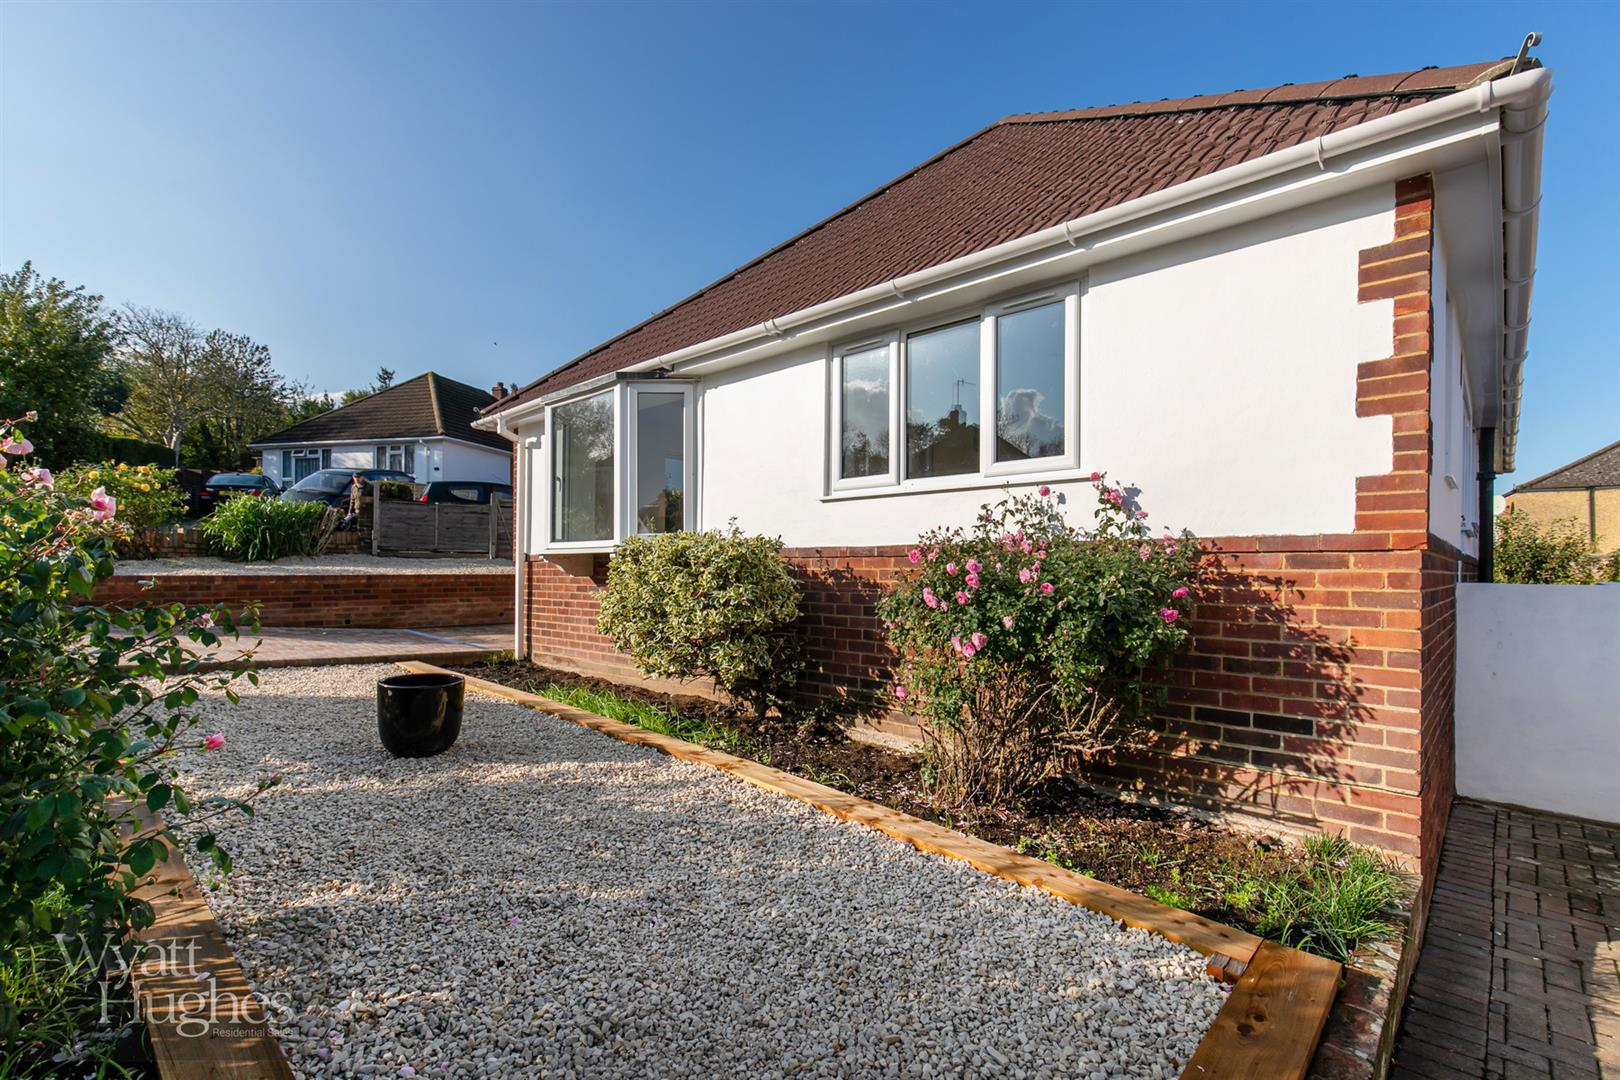 2 bed detached bungalow for sale in Hanover Close, Bexhill-On-Sea, TN40